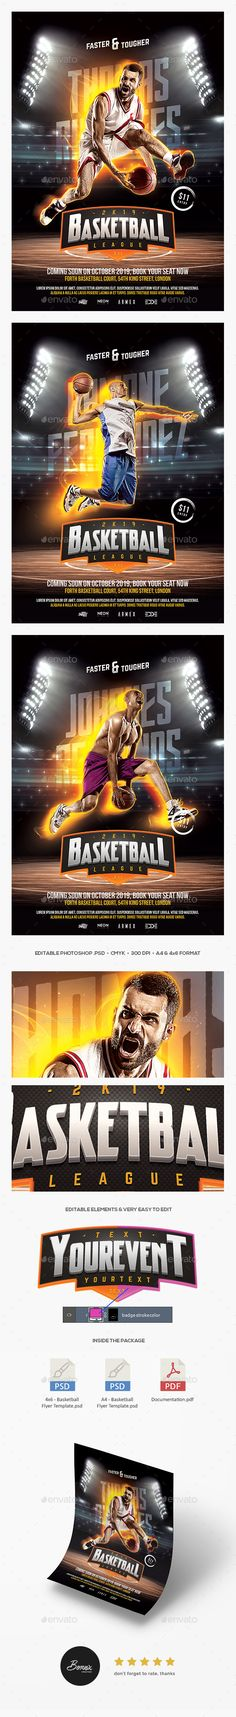 Basketball Flyer Basketball Flyer Template – A premium quality Photoshop flyer template design perfect to promote your basketball league, basketball match, or any basketball sport events. Available in 2 formats, A4 & 4×6 .psd flyer, CMYK color mode, 300 dpi resolutions, very easy to edit and ready for print.